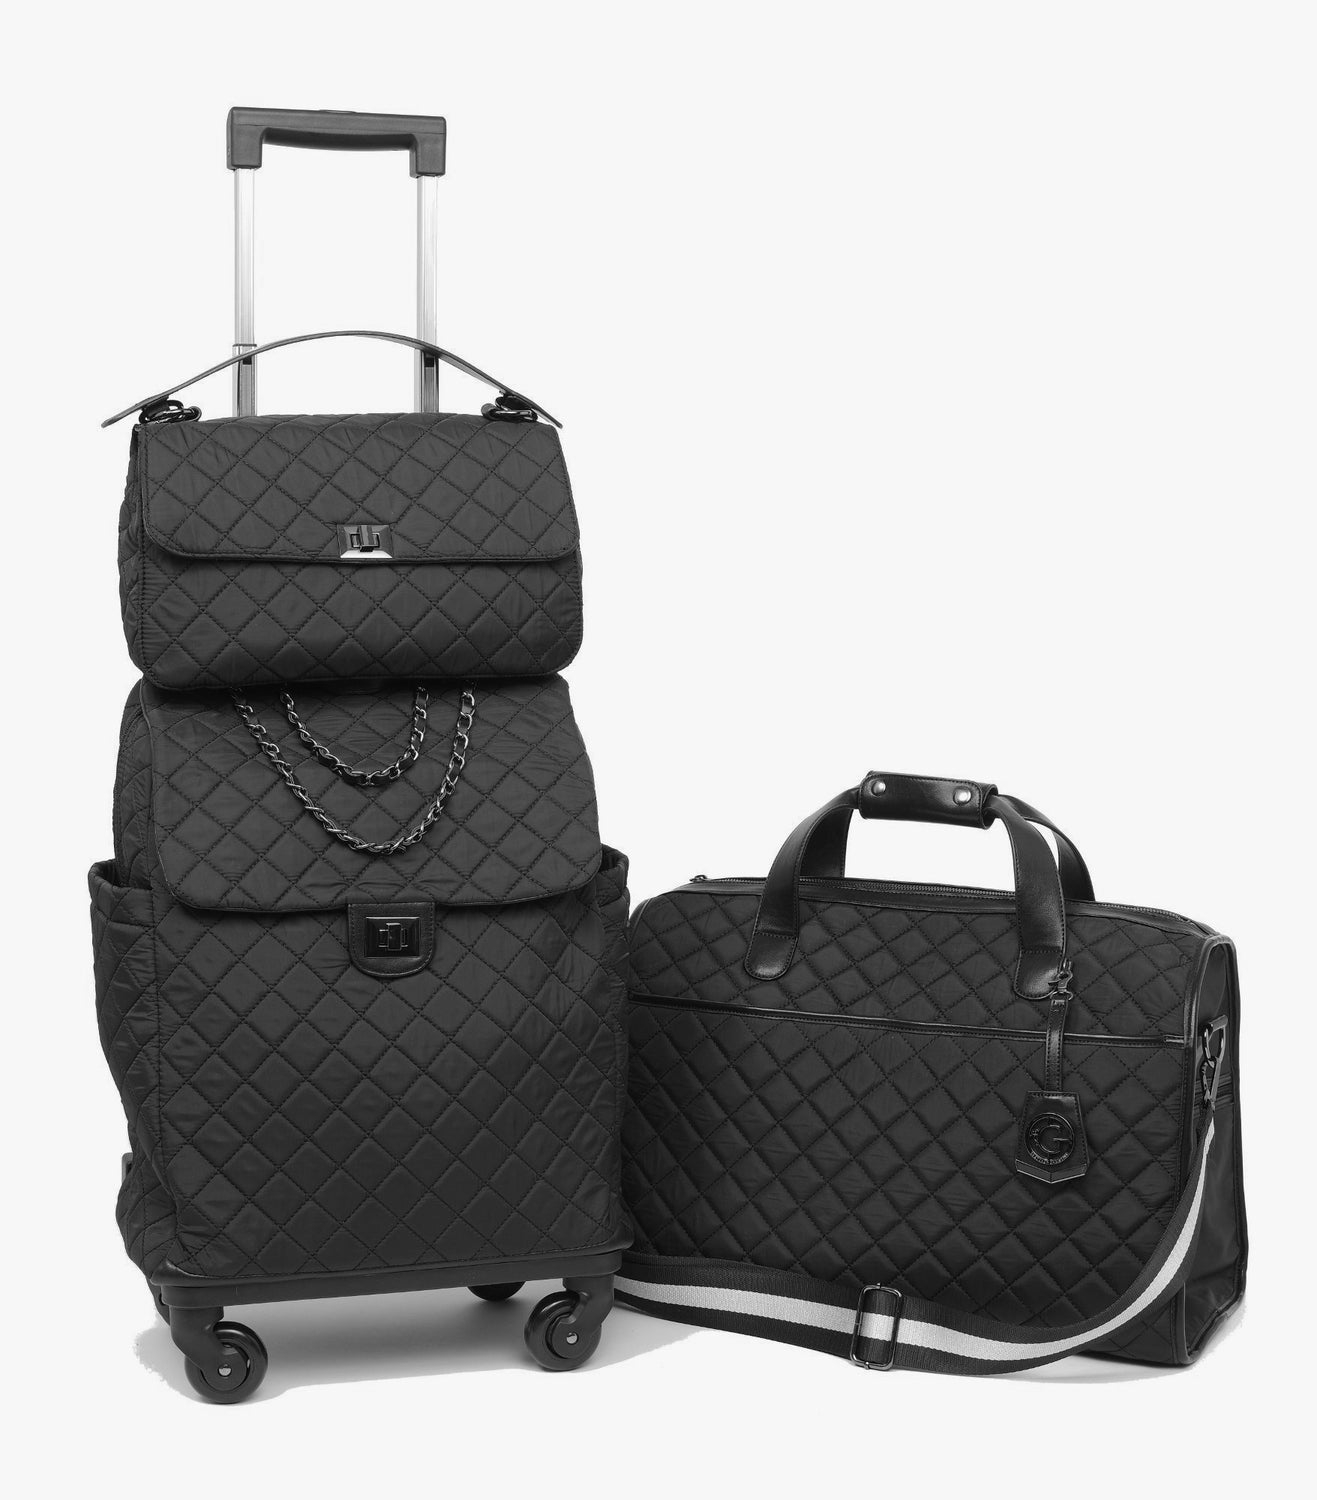 Voyageur Matelassé - The Quilted Traveler - Black